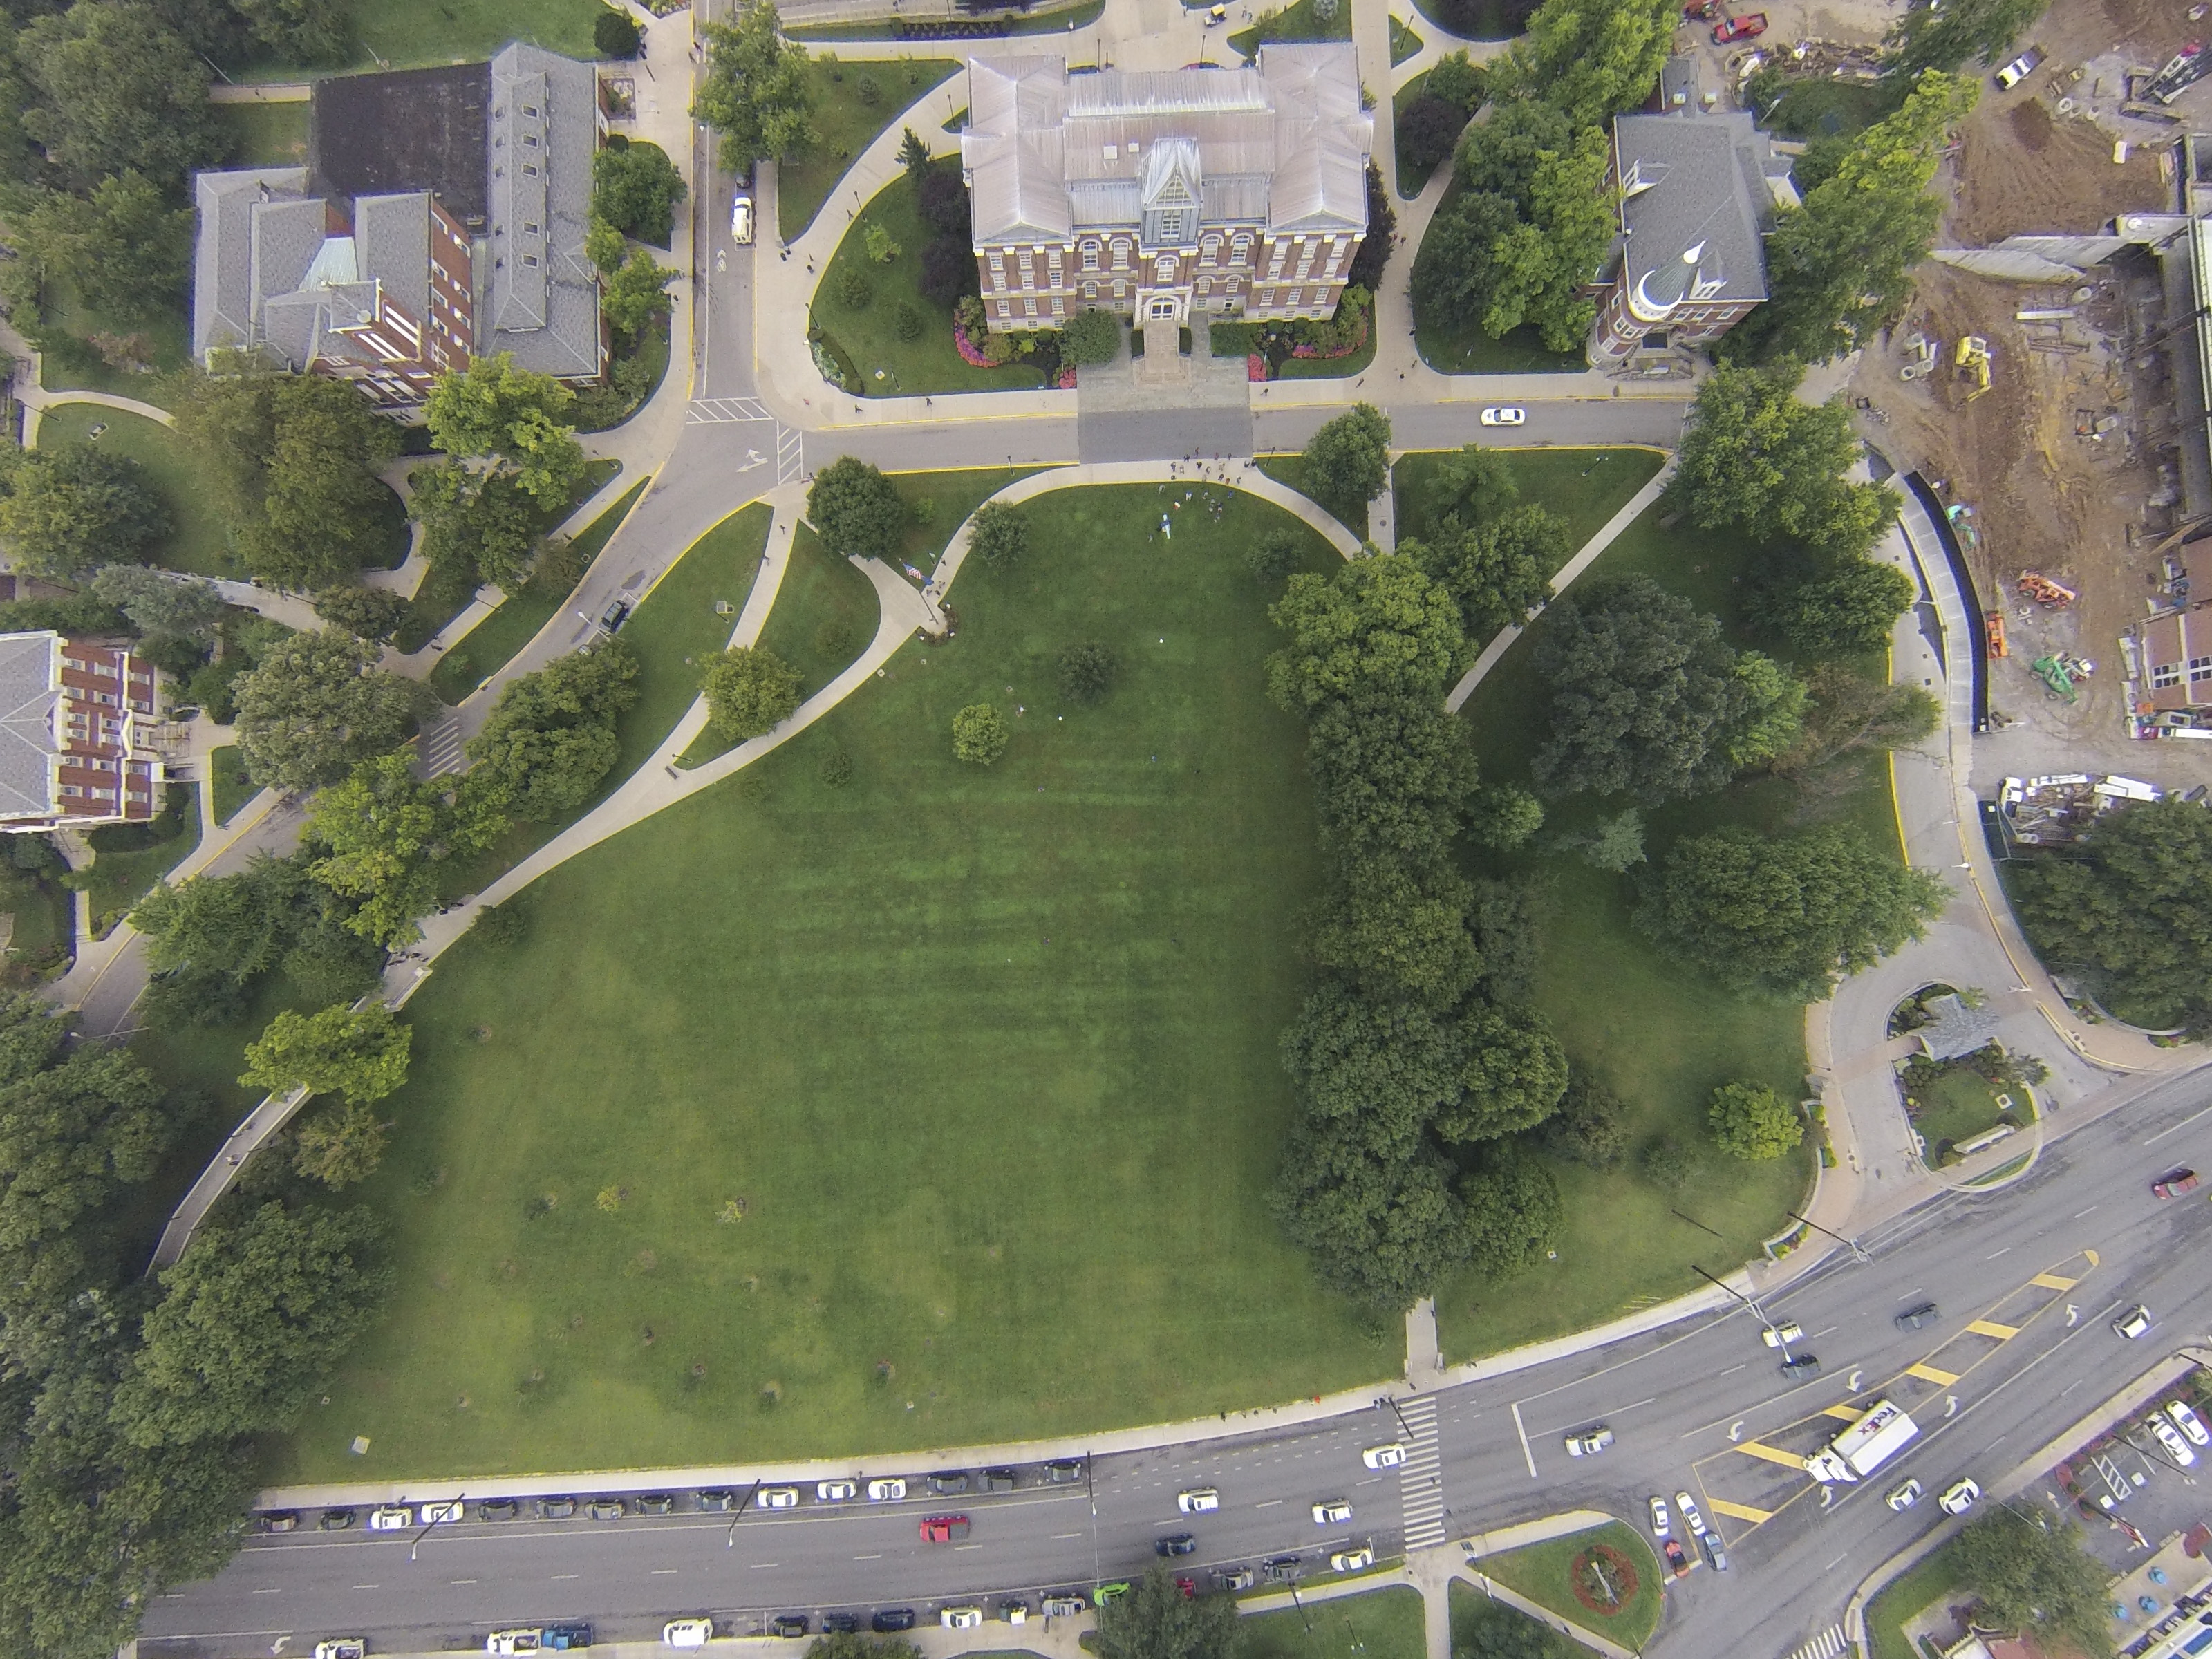 UKY Front Lawn Lab 2